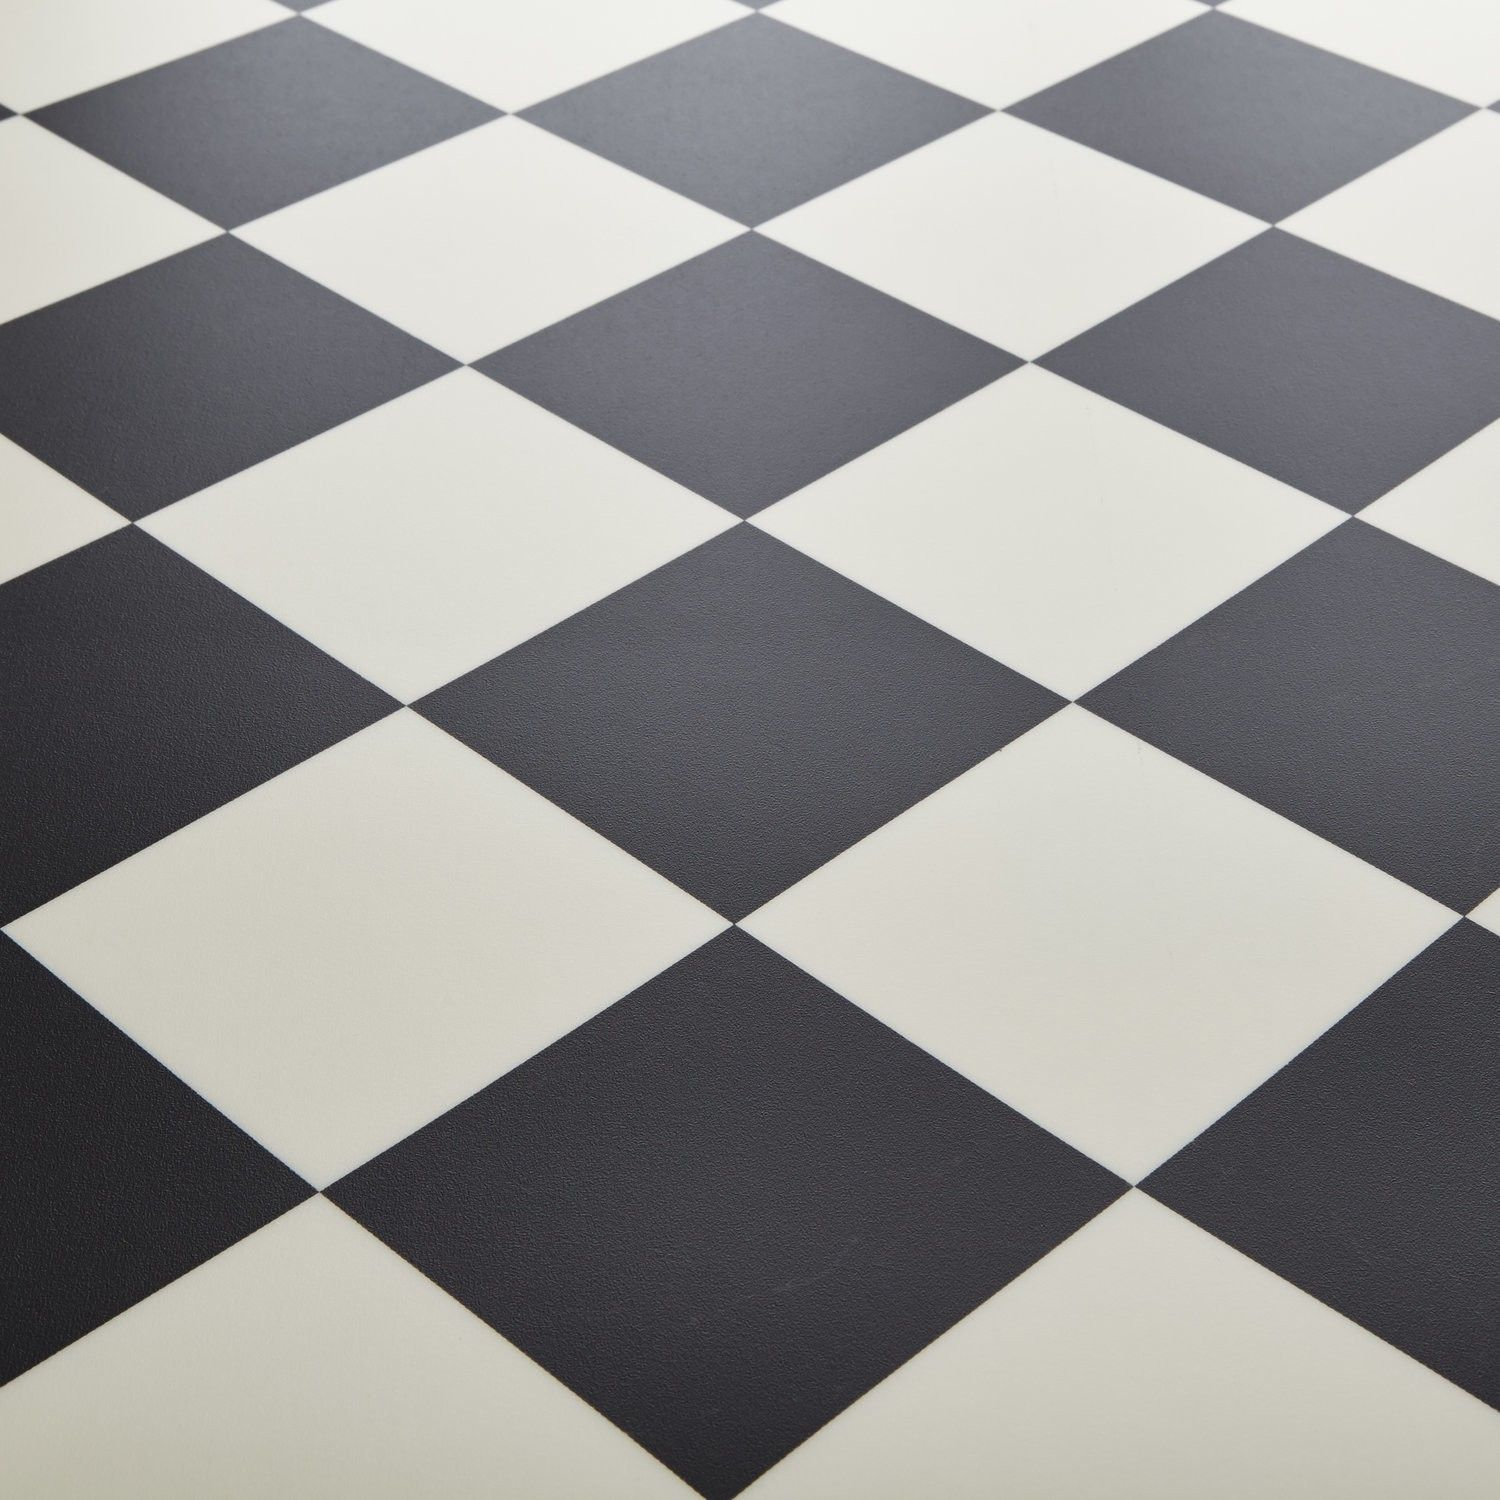 Ideas Black And White Checkered Vinyl Floor Tiles Uk Decoration With Regard To Dimensions 1500 X